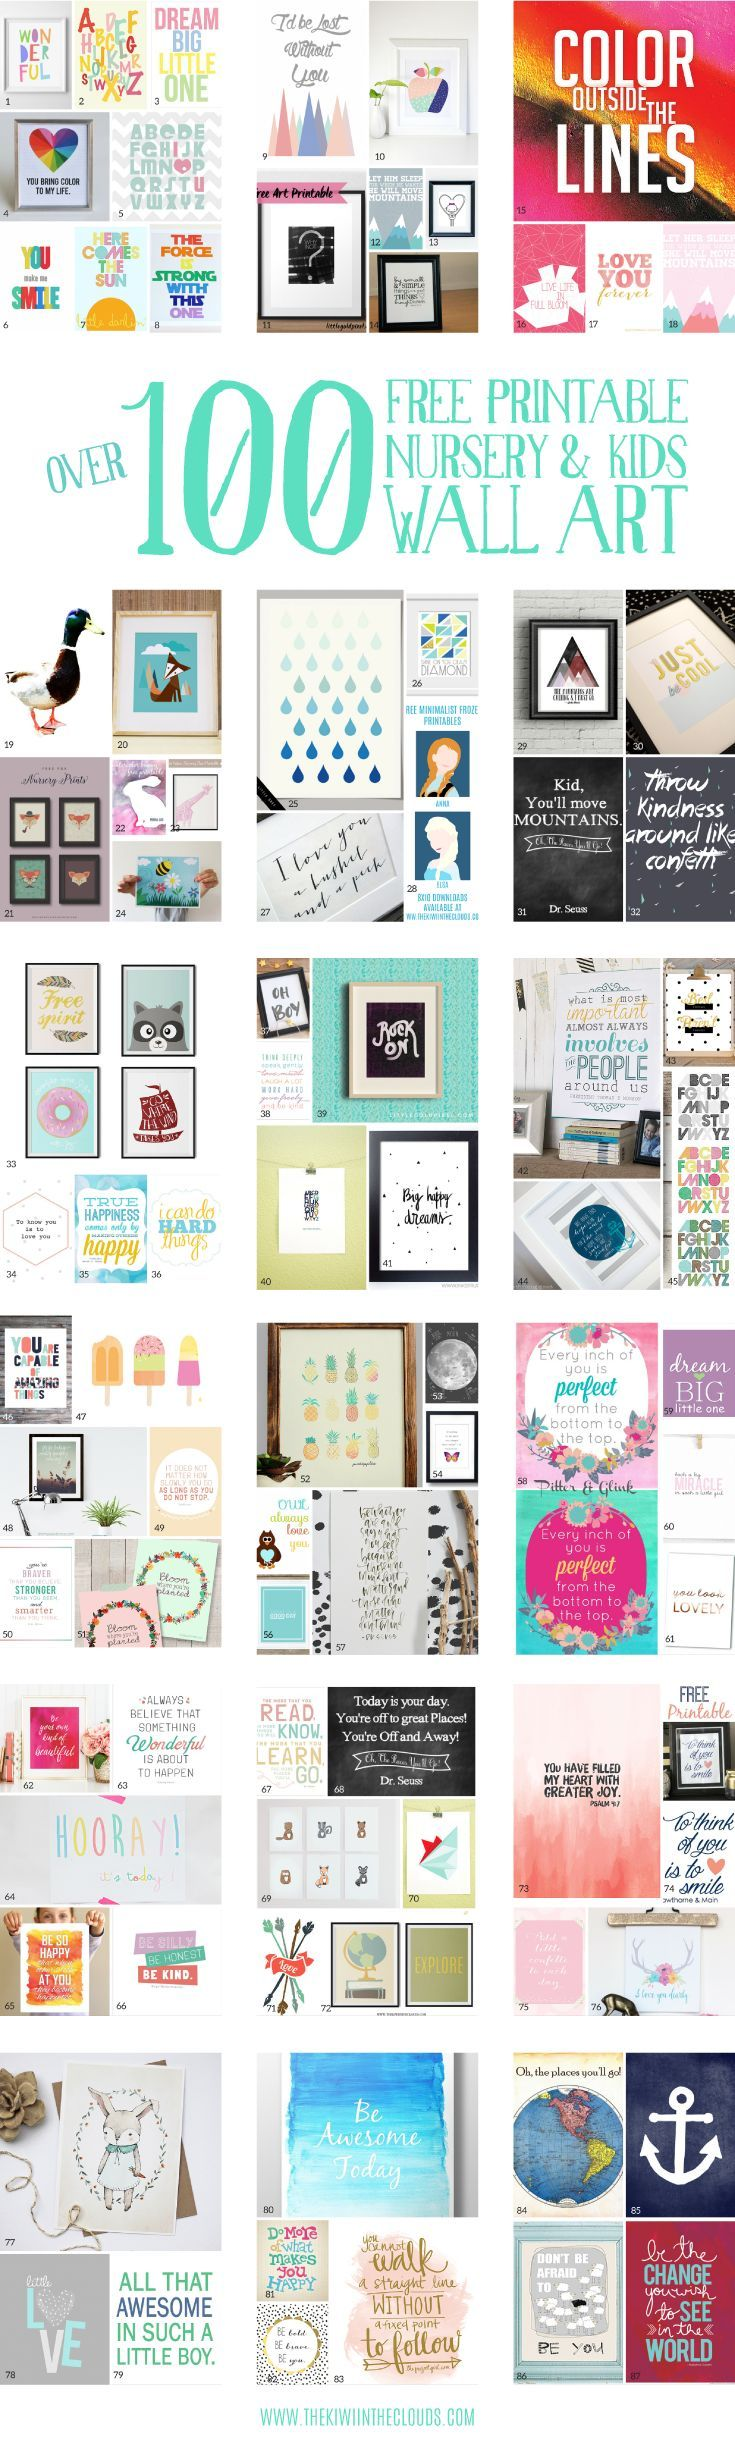 A gigantic guide to the best nursery and kids wall art printables. Pin for later to check them all out! Free Printables #free